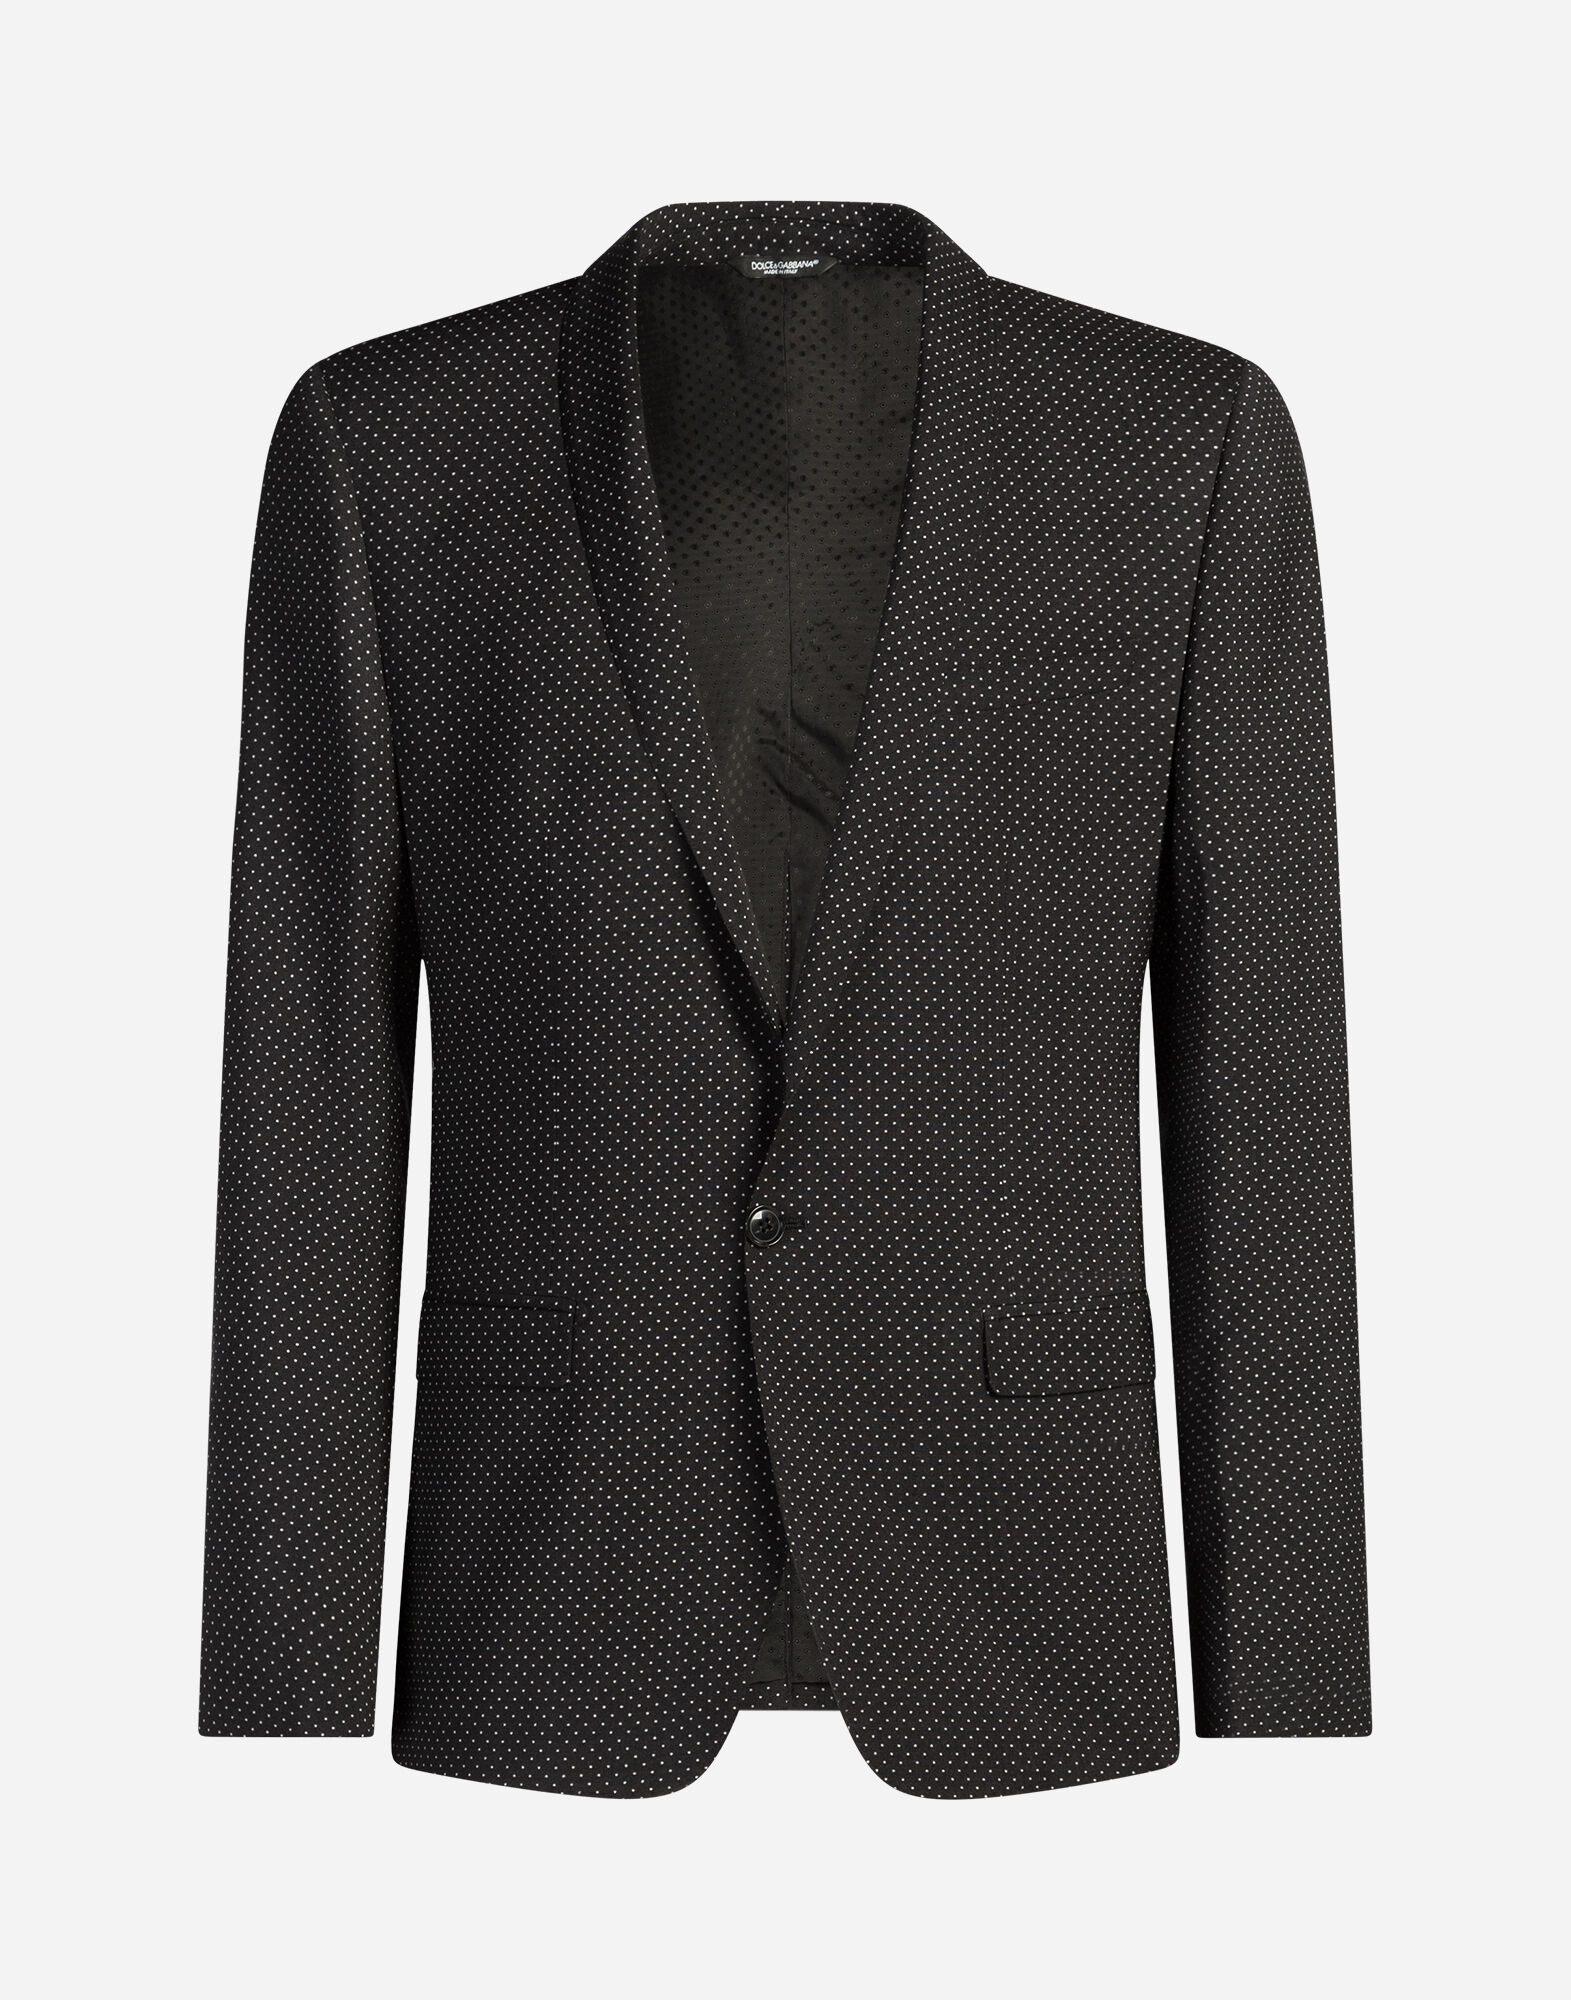 WOOL SUIT WITH POLKA-DOT PRINT